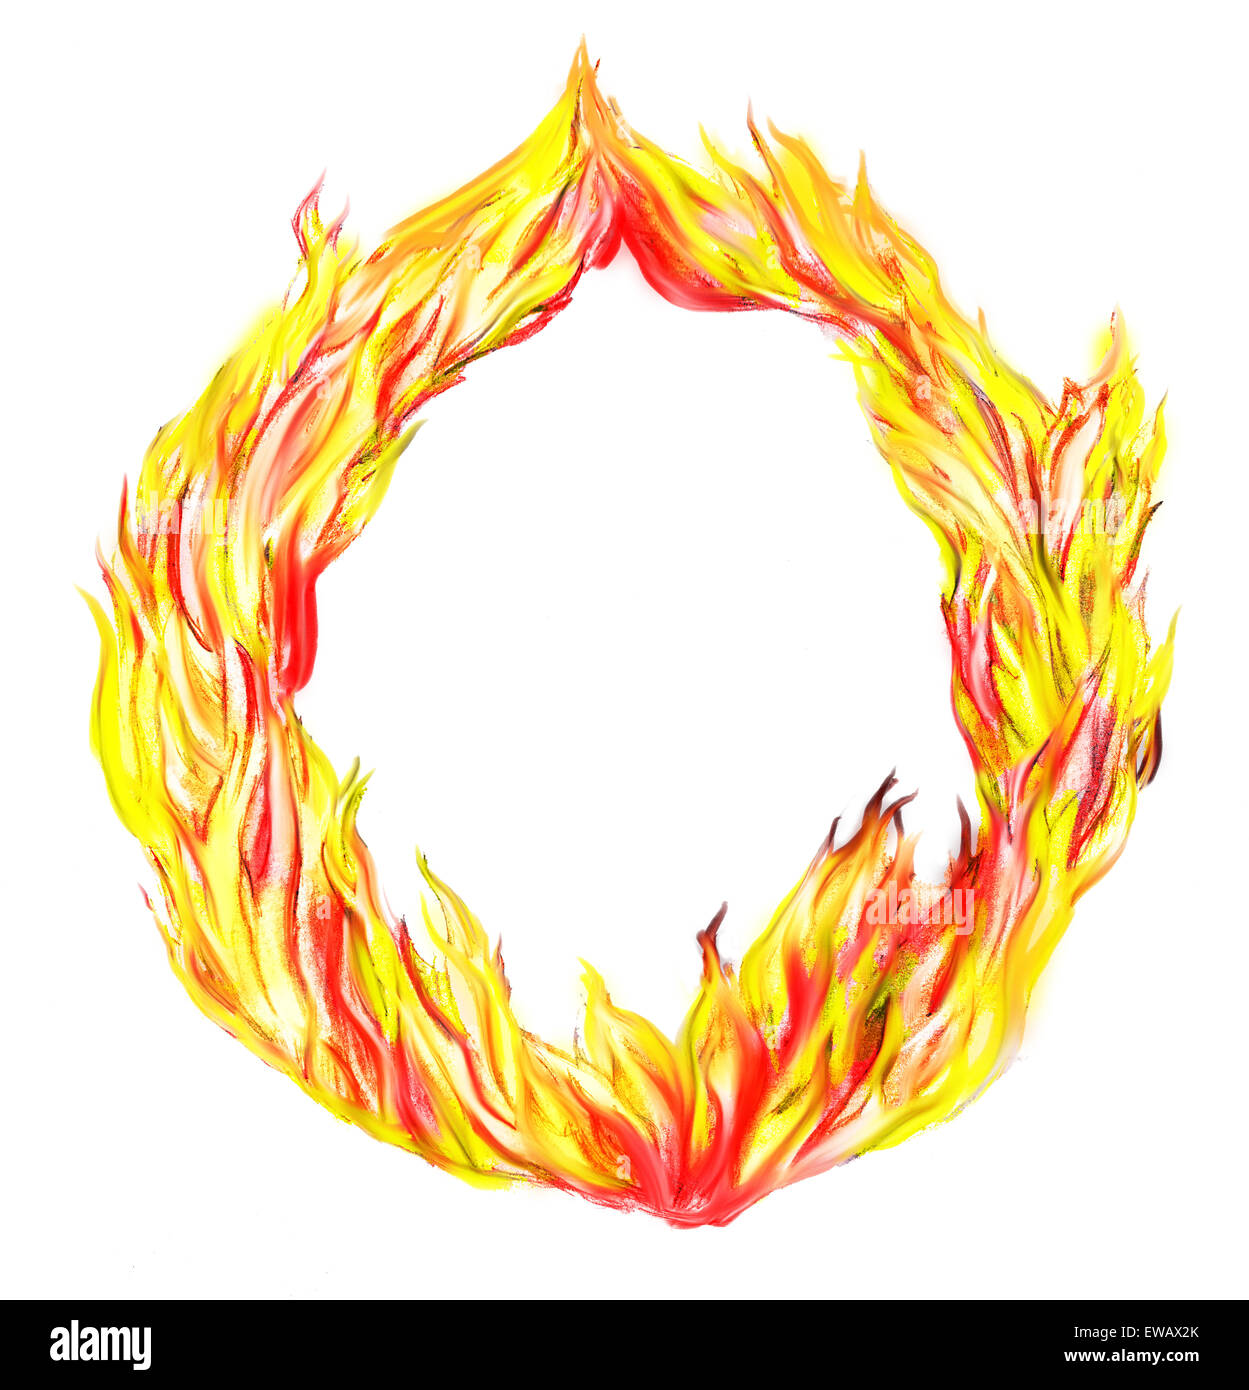 fire in circle isolated on a white background - Stock Image